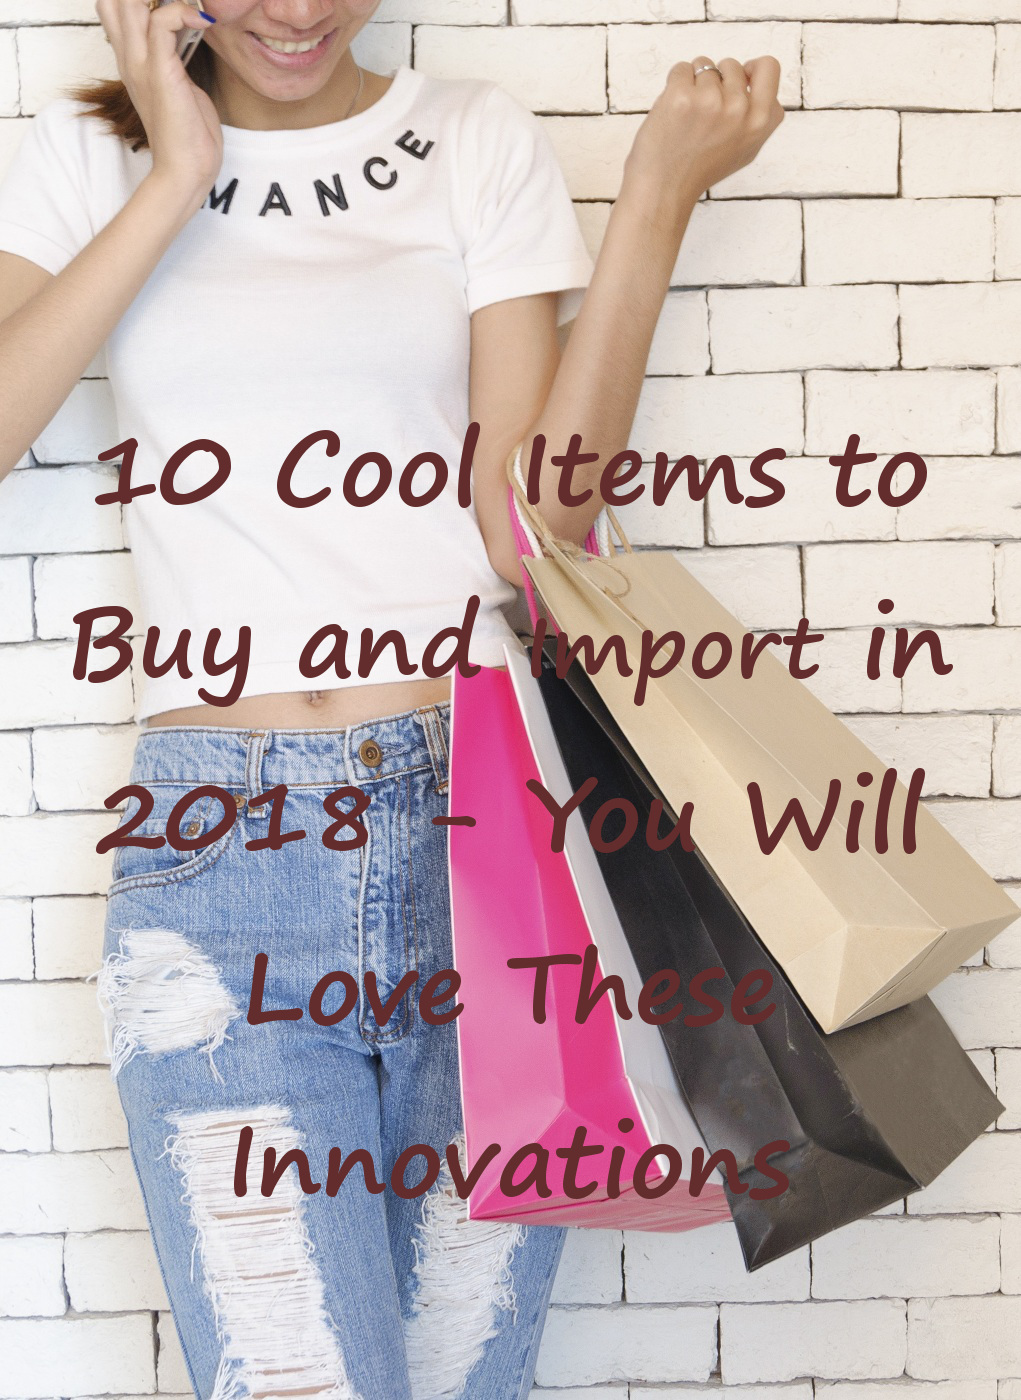 7 Hot Unique Items To Buy in 2018 Home Dcor Fashion Jewelry